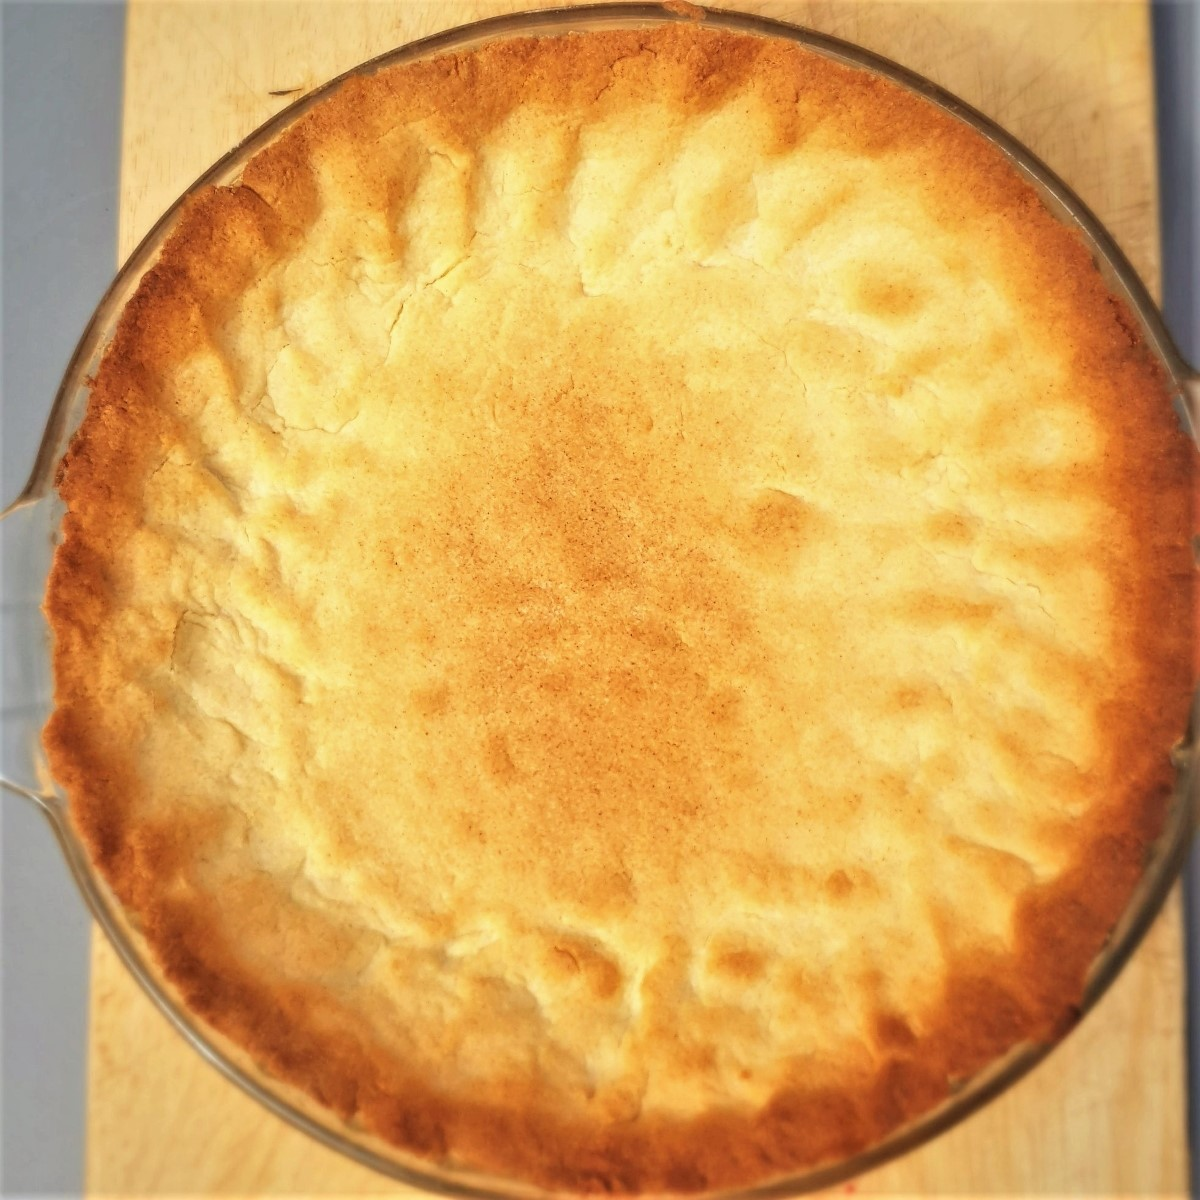 A baked pastry shell ready to be filled with the delicious milk tart filling.